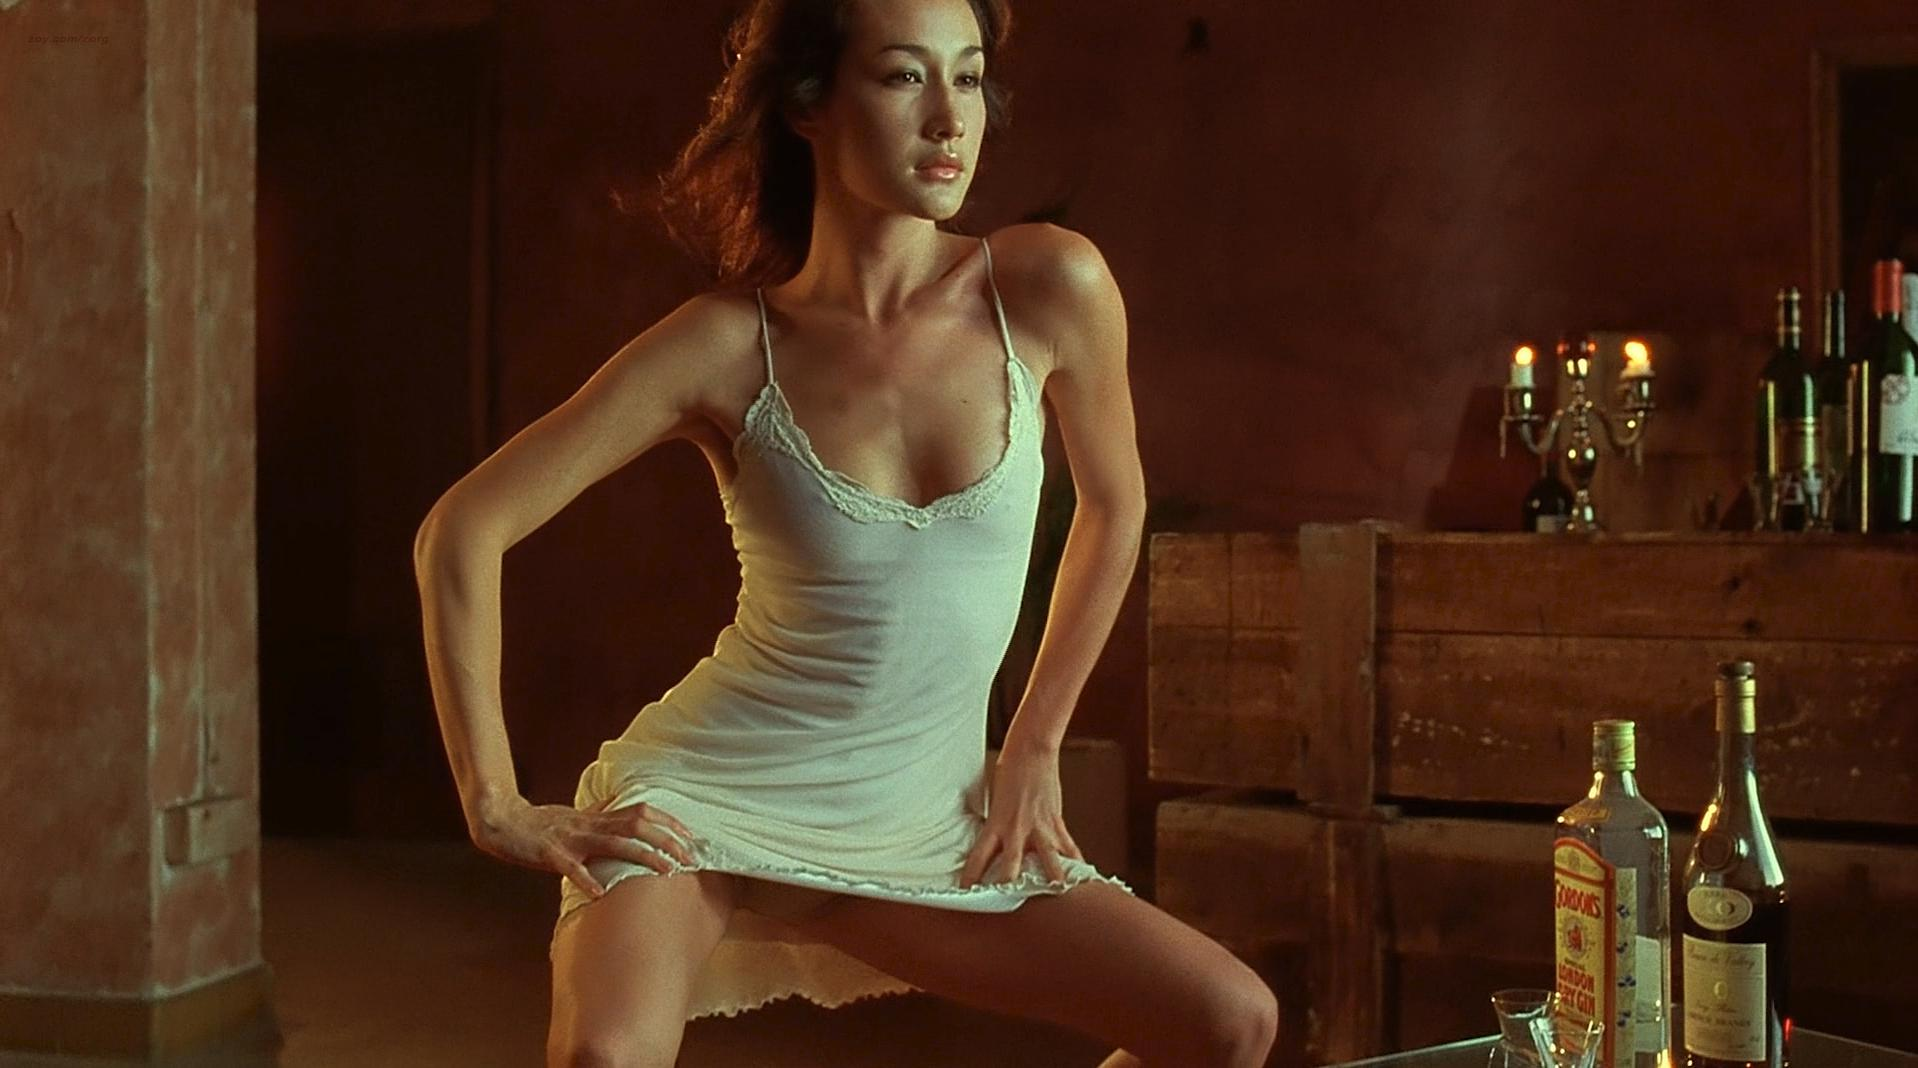 Maggie q nude and sexy photos naked (92 pic)